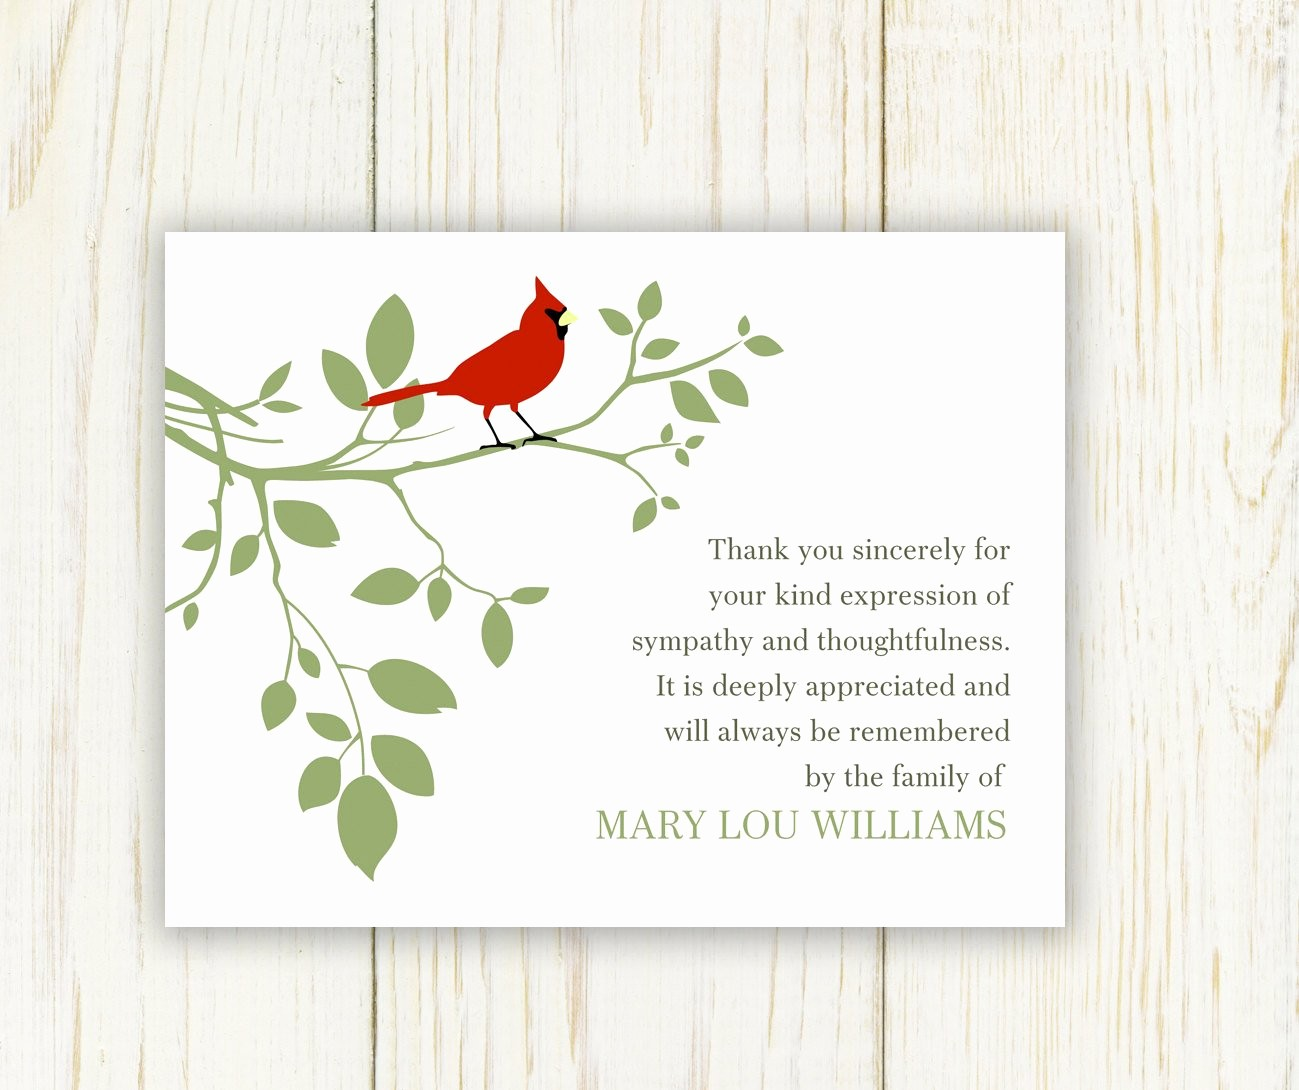 Free Sympathy Cards to Print Unique Red Bird Funeral Thank You Card Digital Sympathy Card